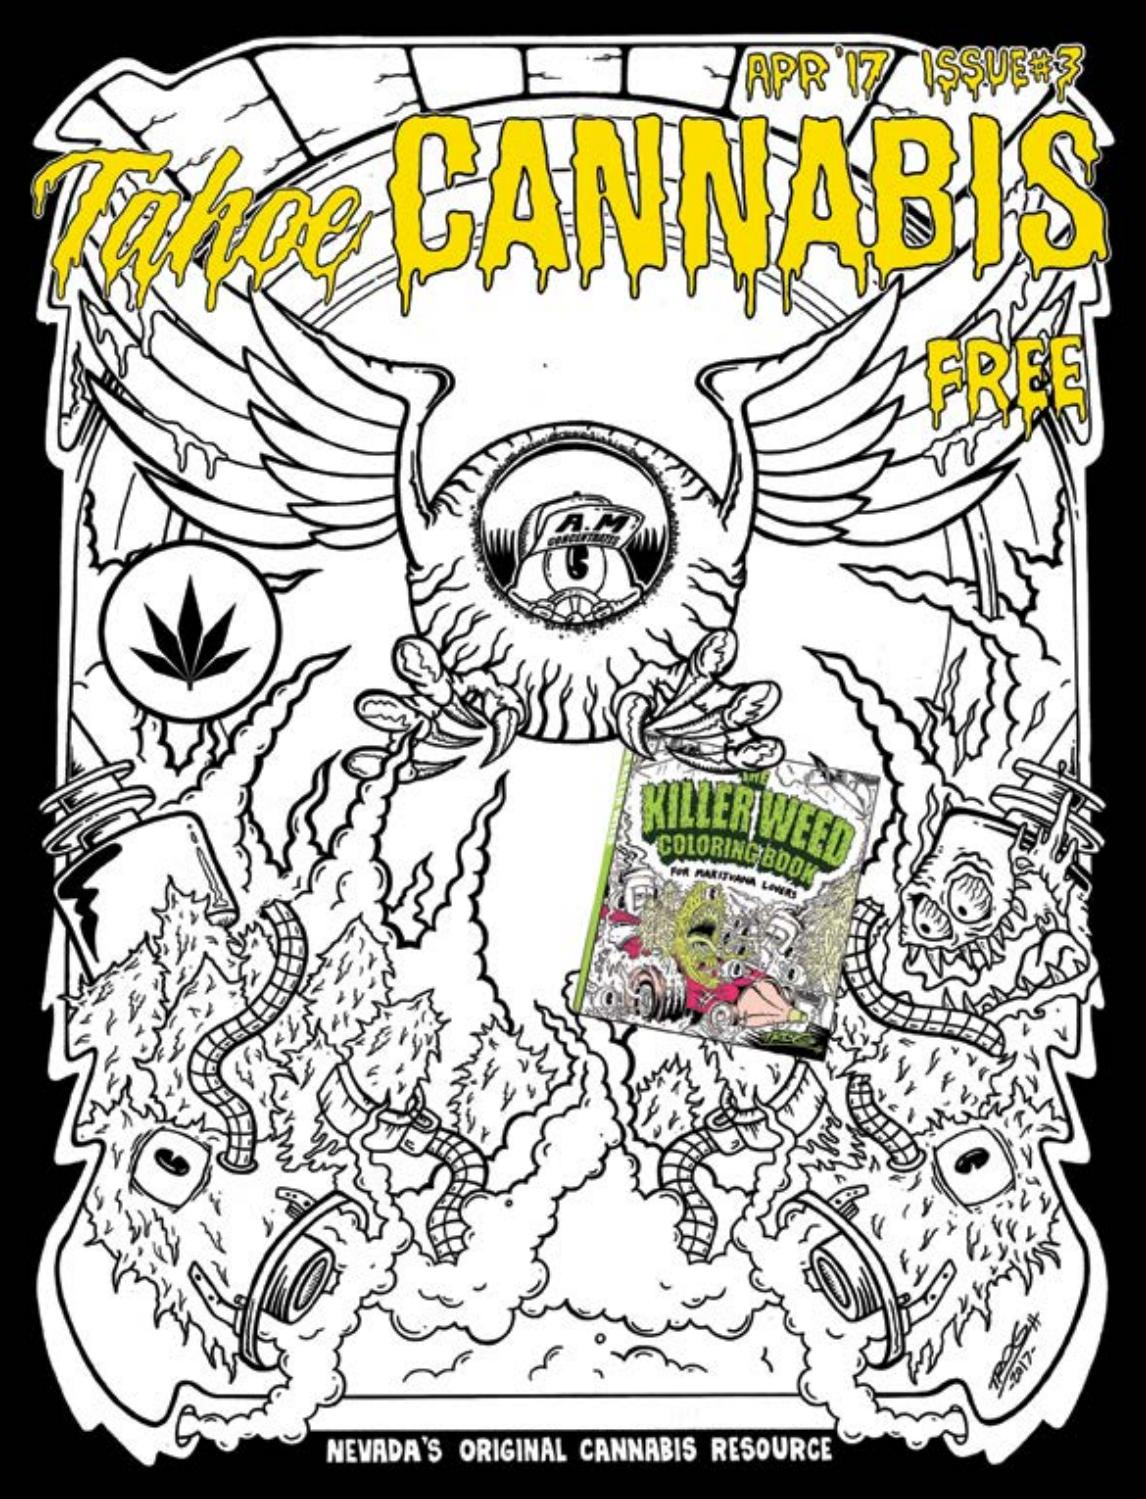 Tahoe Cannabis Magazine by Vegas Cannabis Magazine - issuu